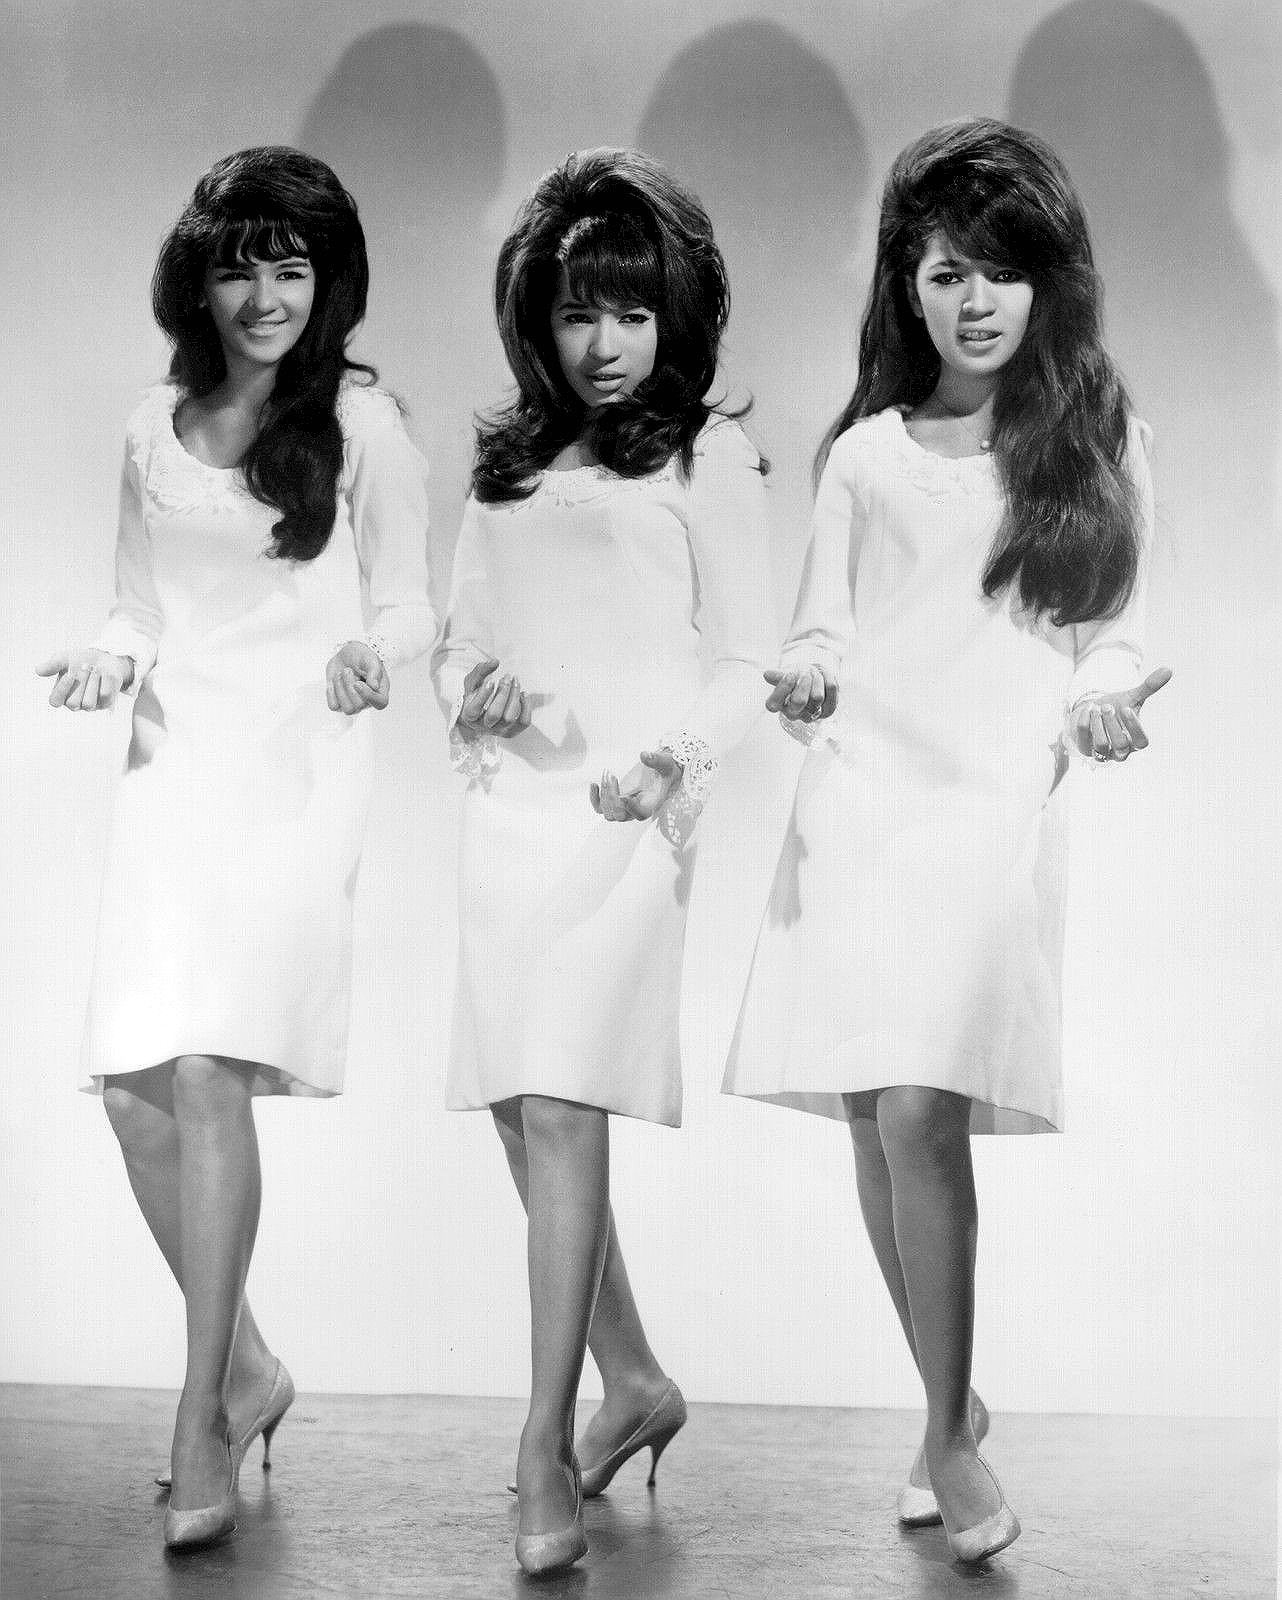 The Ronettes - New York City, New York U.S.A. - August 1963 - Photographer: James Kriegsmann